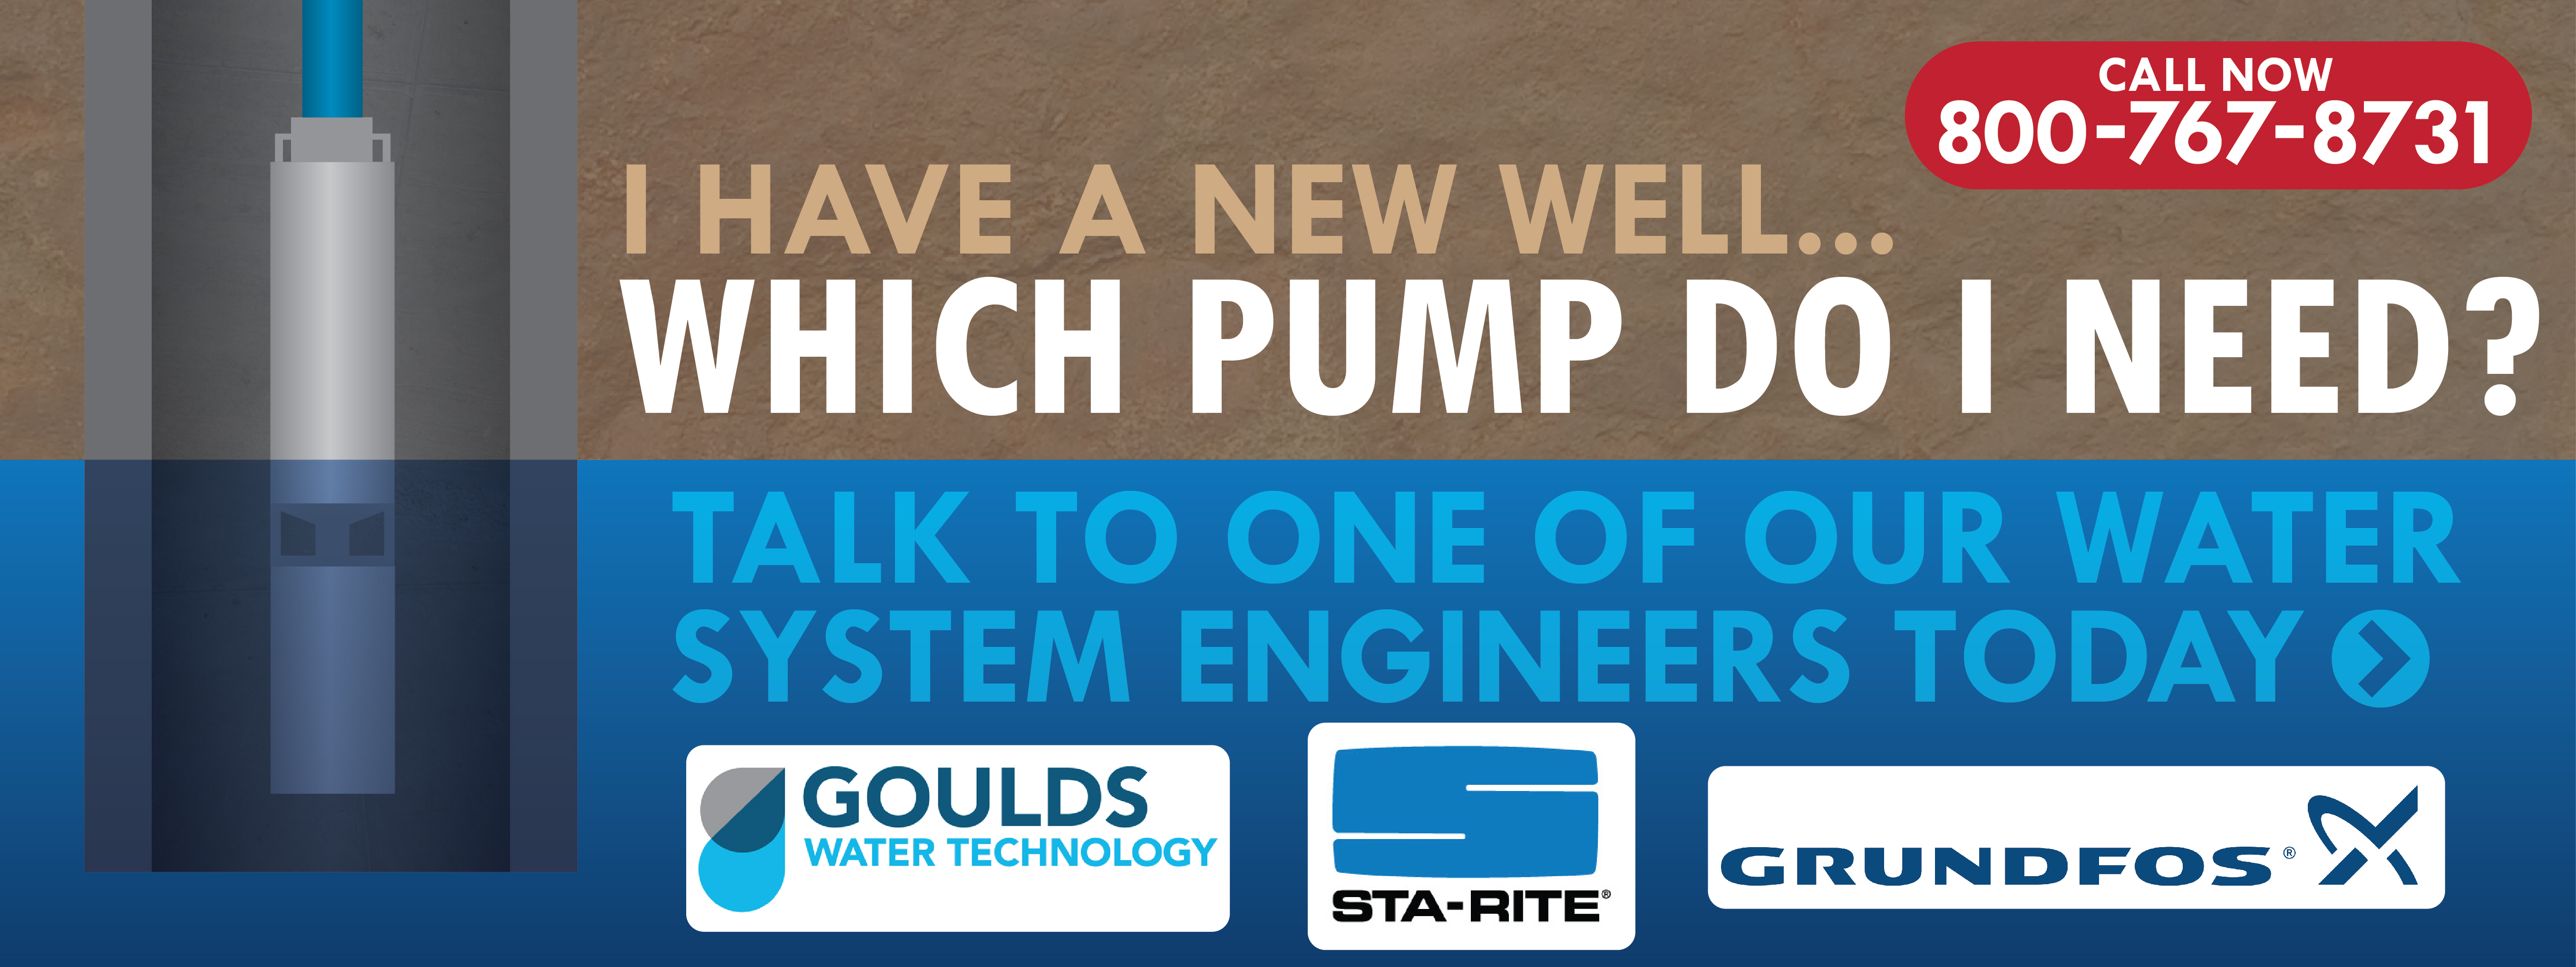 Call us for help choosing a submersible pump for your well